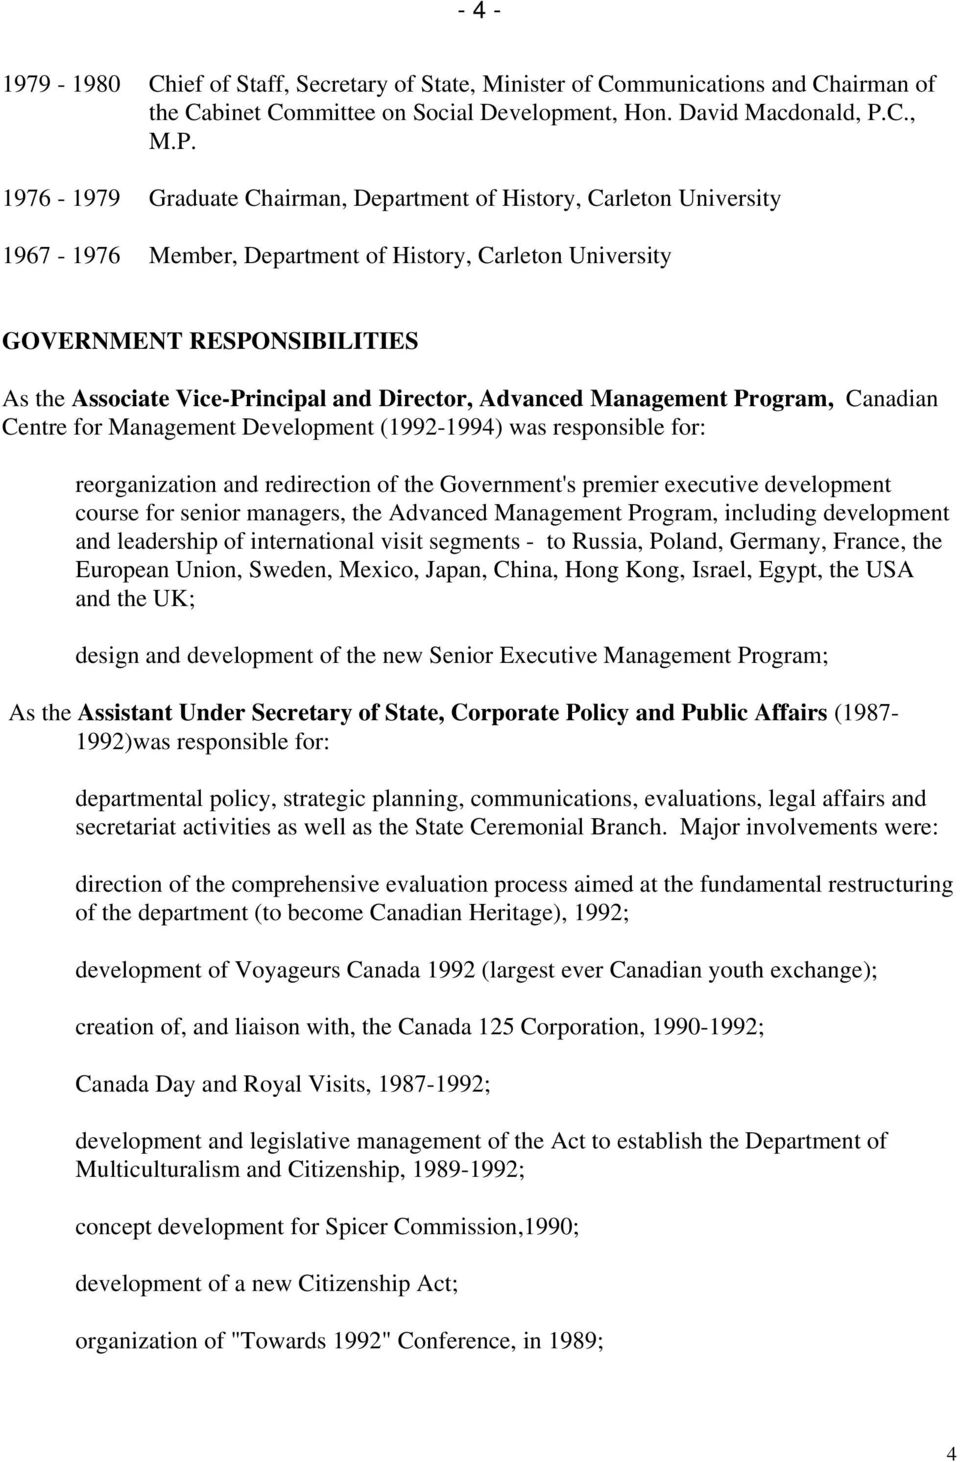 1976-1979 Graduate Chairman, Department of History, Carleton University 1967-1976 Member, Department of History, Carleton University GOVERNMENT RESPONSIBILITIES As the Associate Vice-Principal and